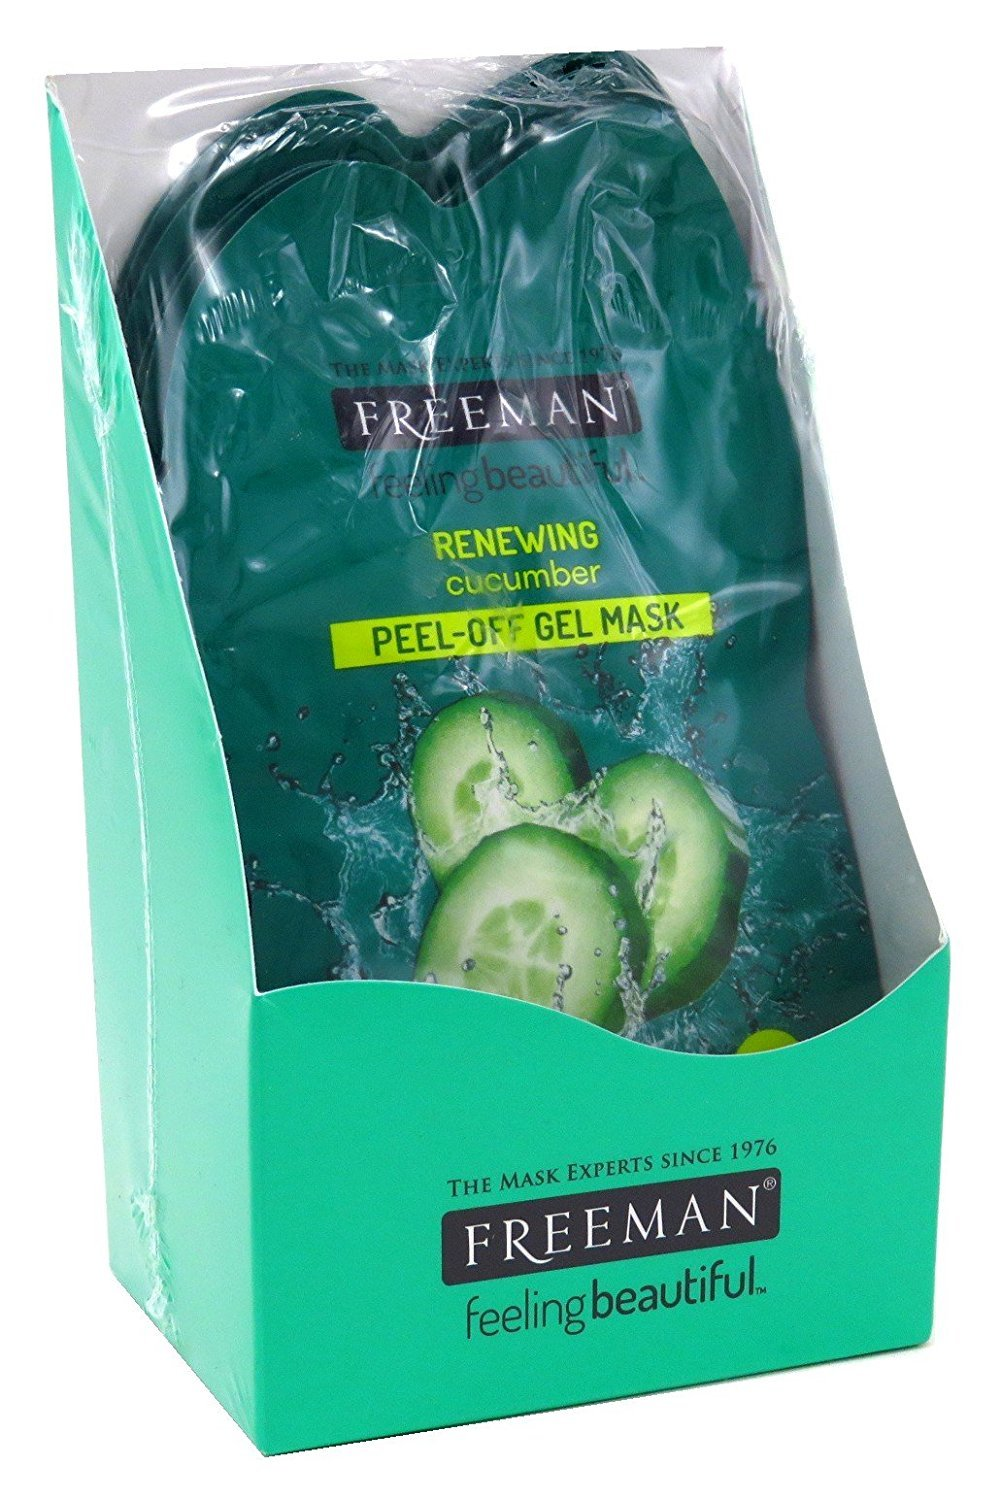 Freeman Facial Cucumber Peel-Off Mask Packette (6 Pieces)